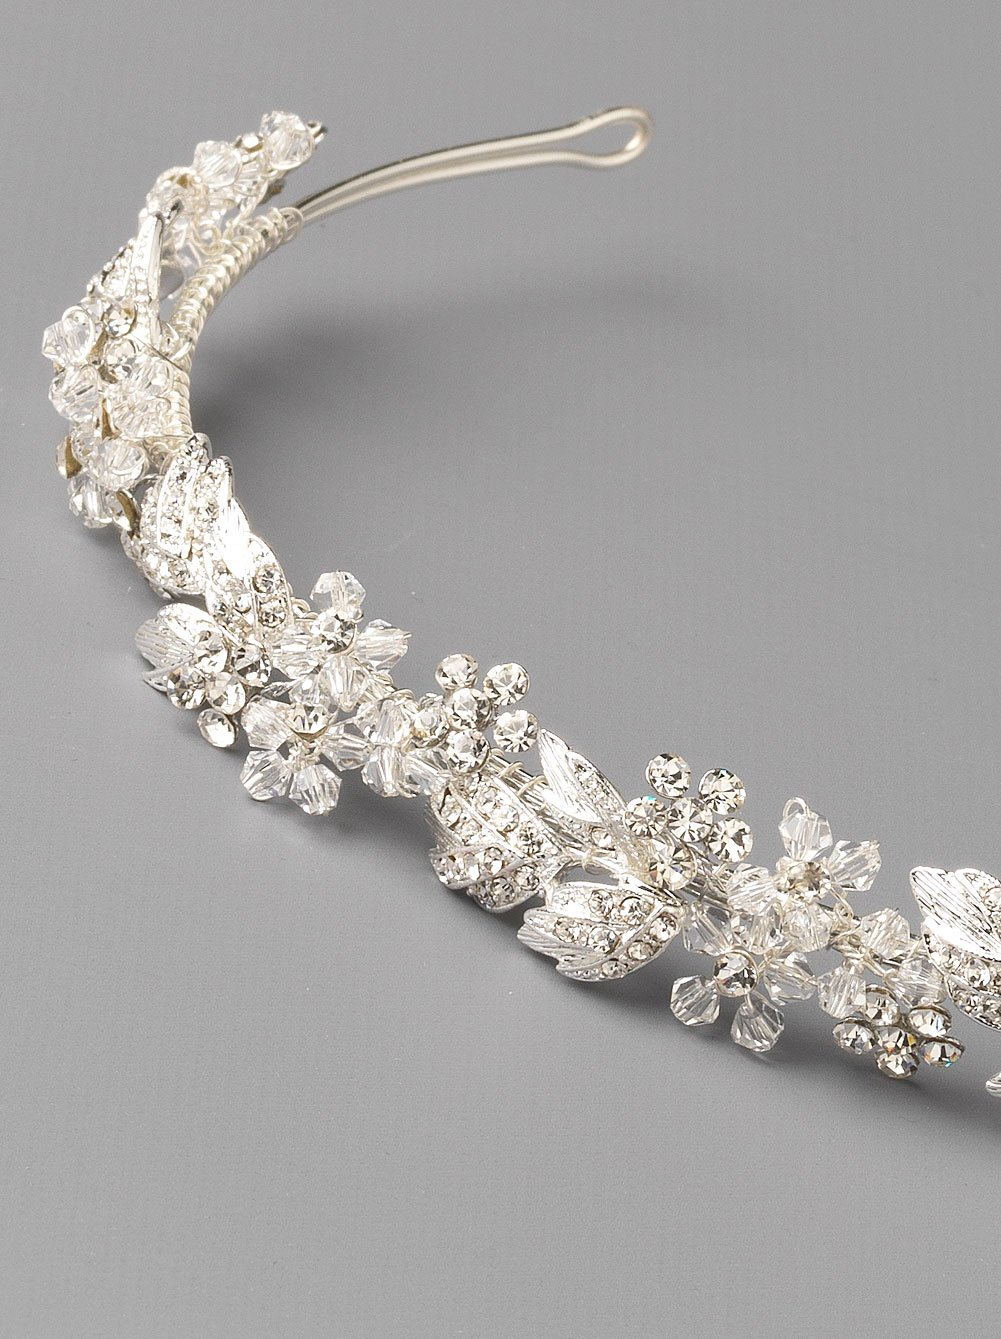 USABride Floral Headband Rhinestone Flower Bridal Headpiece Silver Plated with Rhinestones TI-3300 by USABride (Image #4)